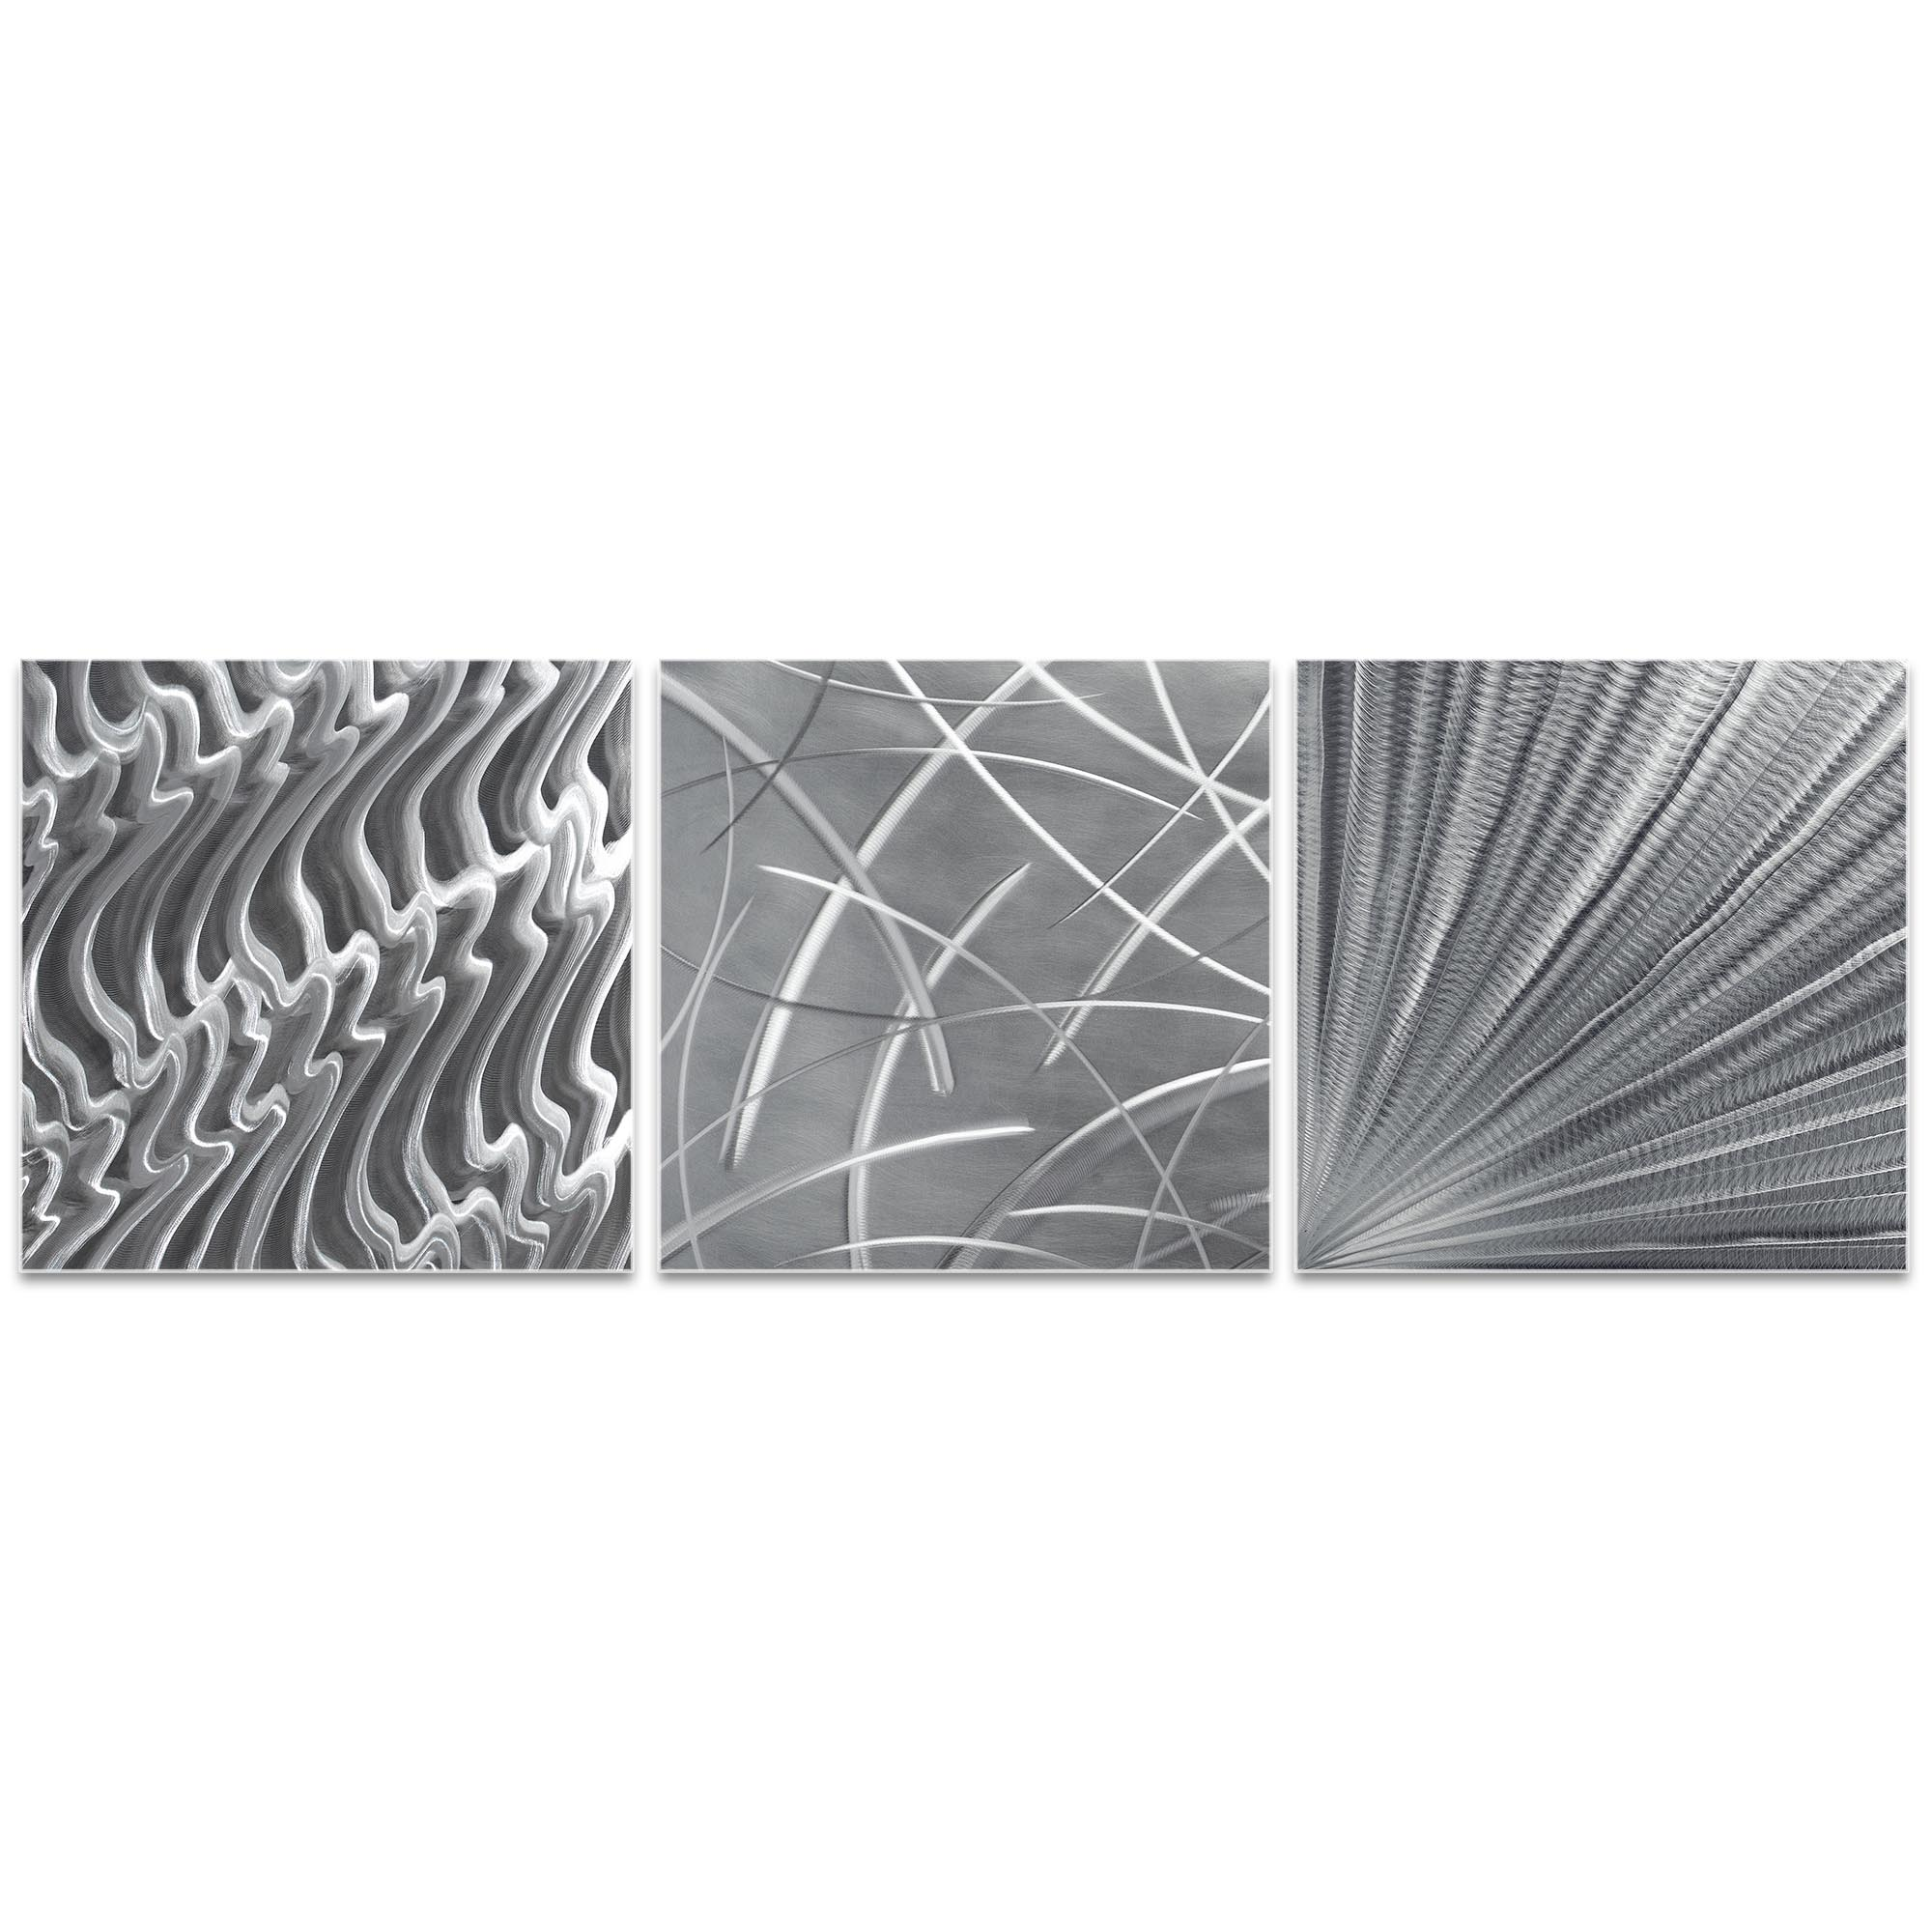 Countless v2 Triptych Large 70x22in. Metal or Acrylic Contemporary Decor - Image 2